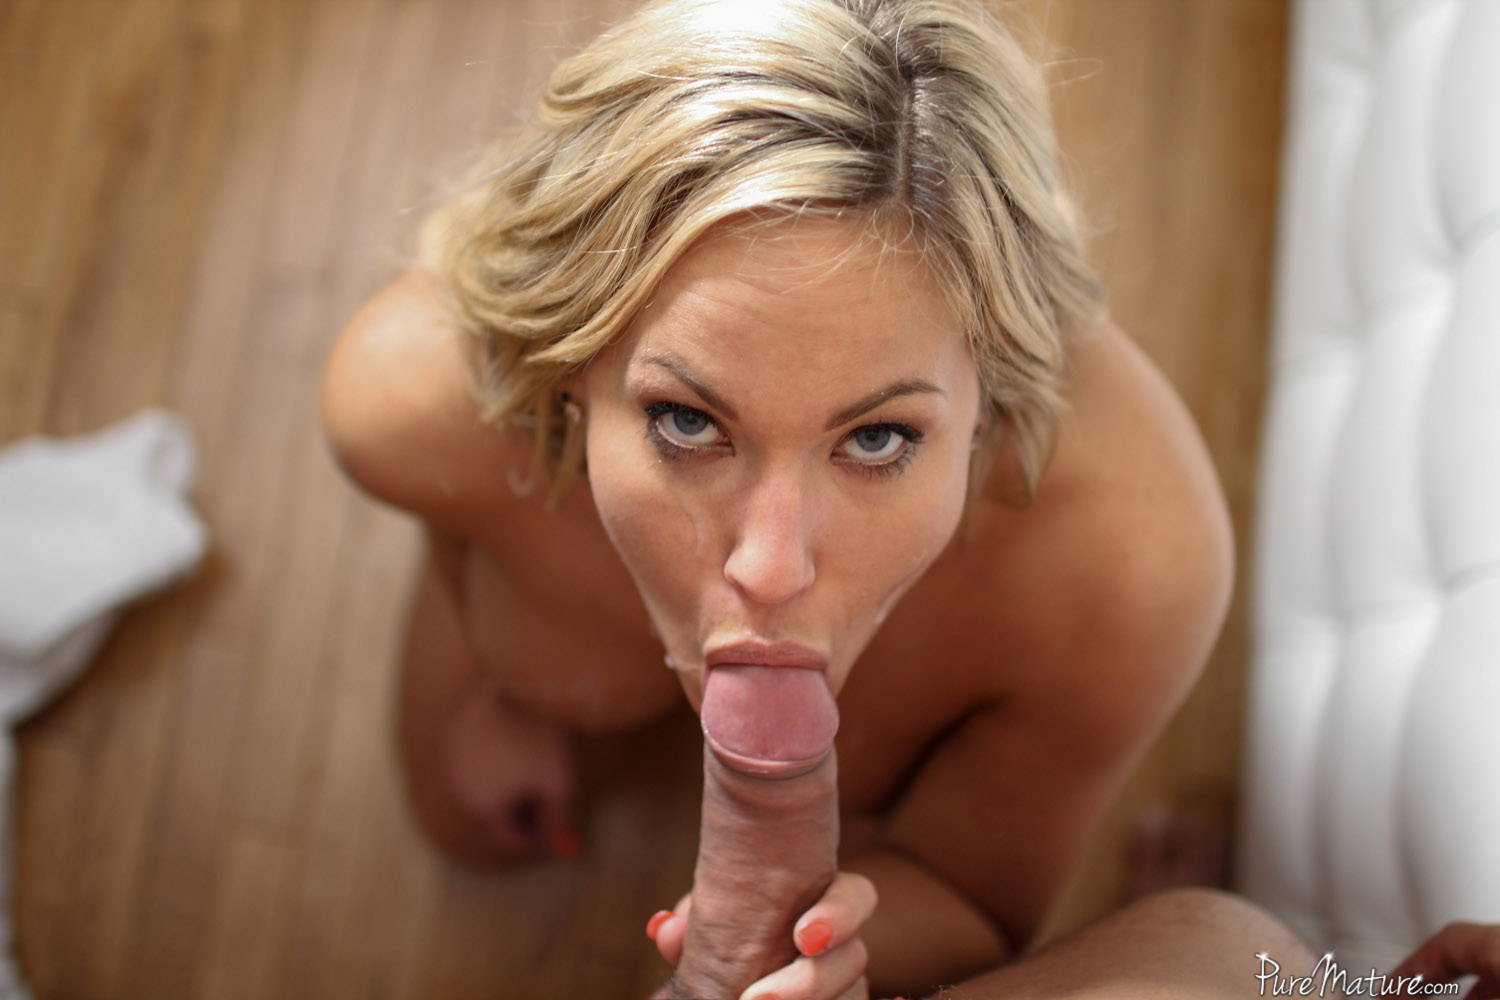 Yeah blonde amature milf gostosa fail bonne